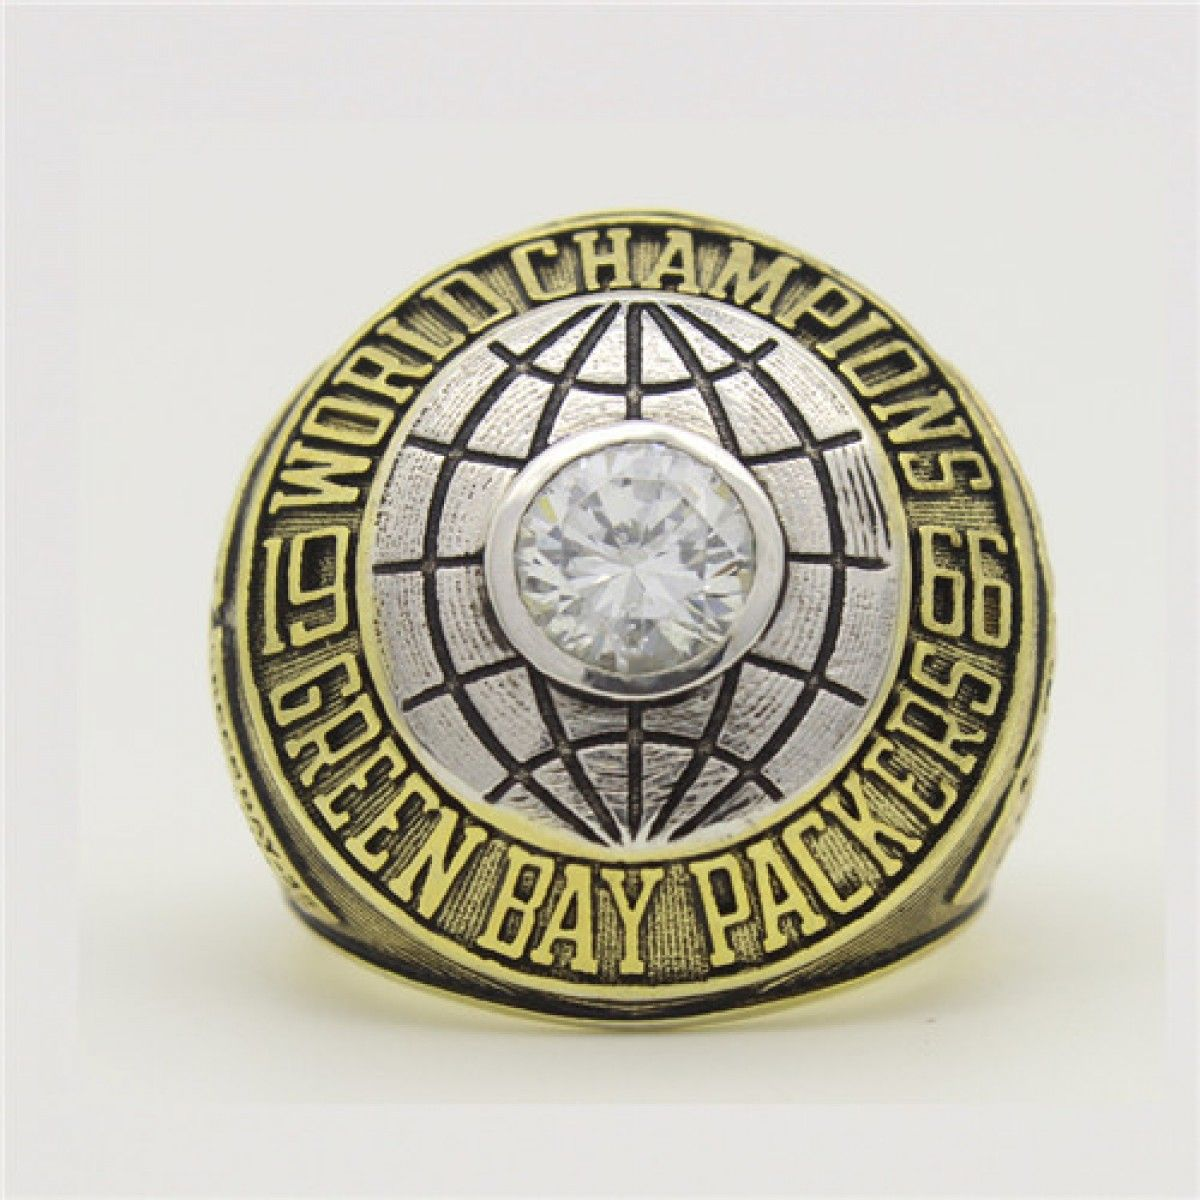 Nfl 1966 Super Bowl I Green Bay Packers Championship Fan Ring Would Be A Unique And A Great Green Bay Packers Championships Super Bowl Rings Green Bay Packers